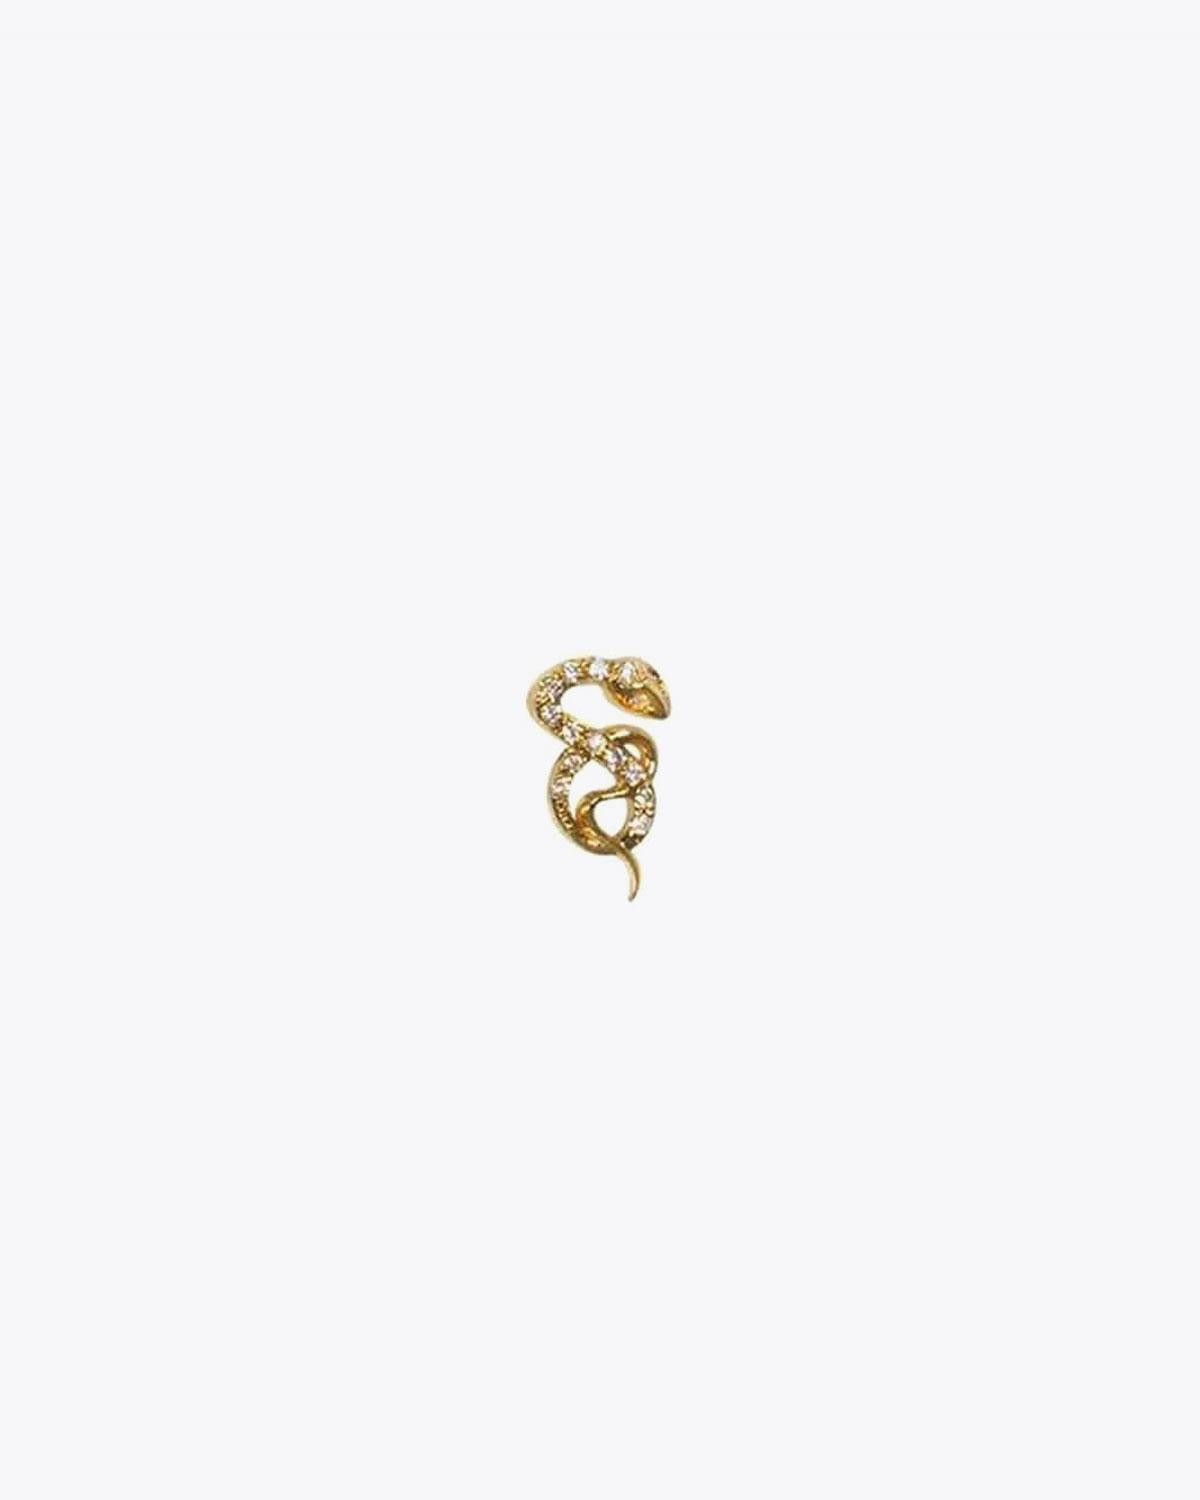 Feidt Bo Serpent - Or Jaune 18K et Diamants